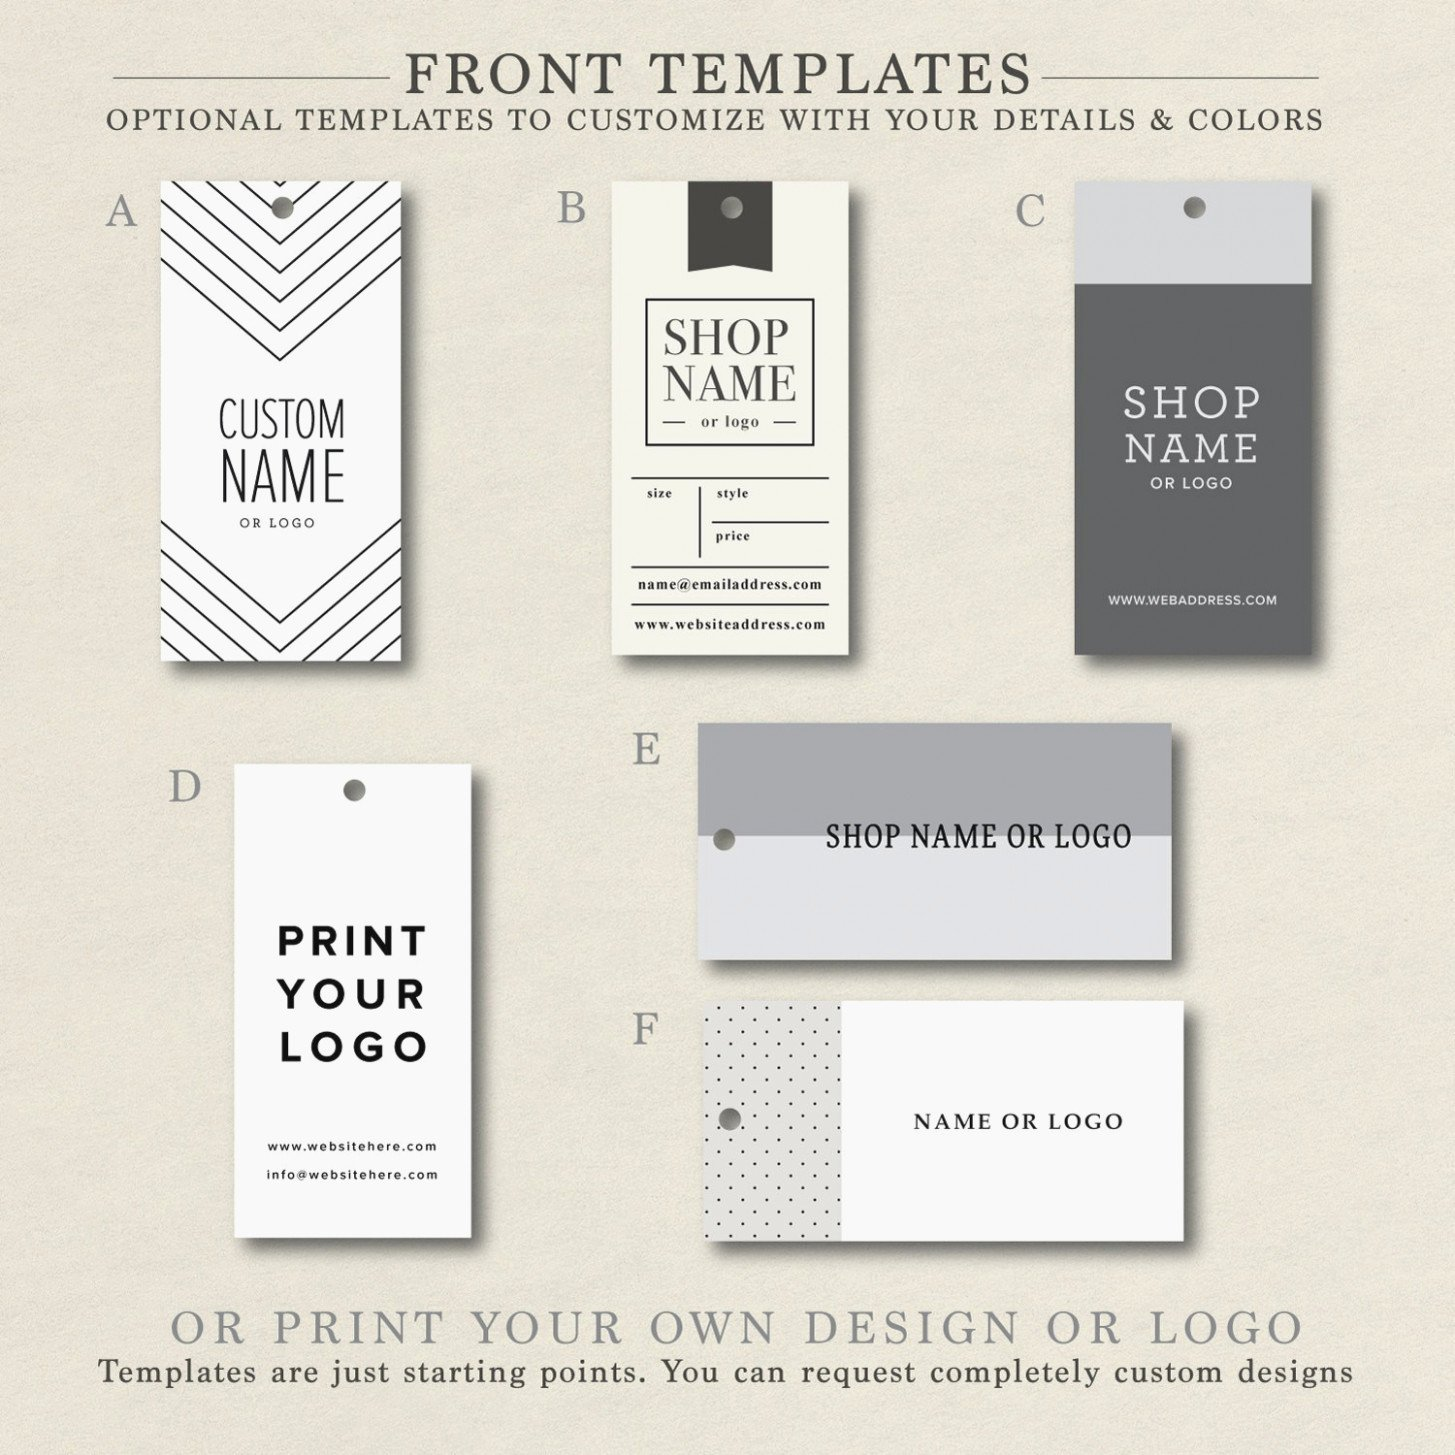 Hang Tag Design Template Elegant the 10 Secrets About Clothing Label Design